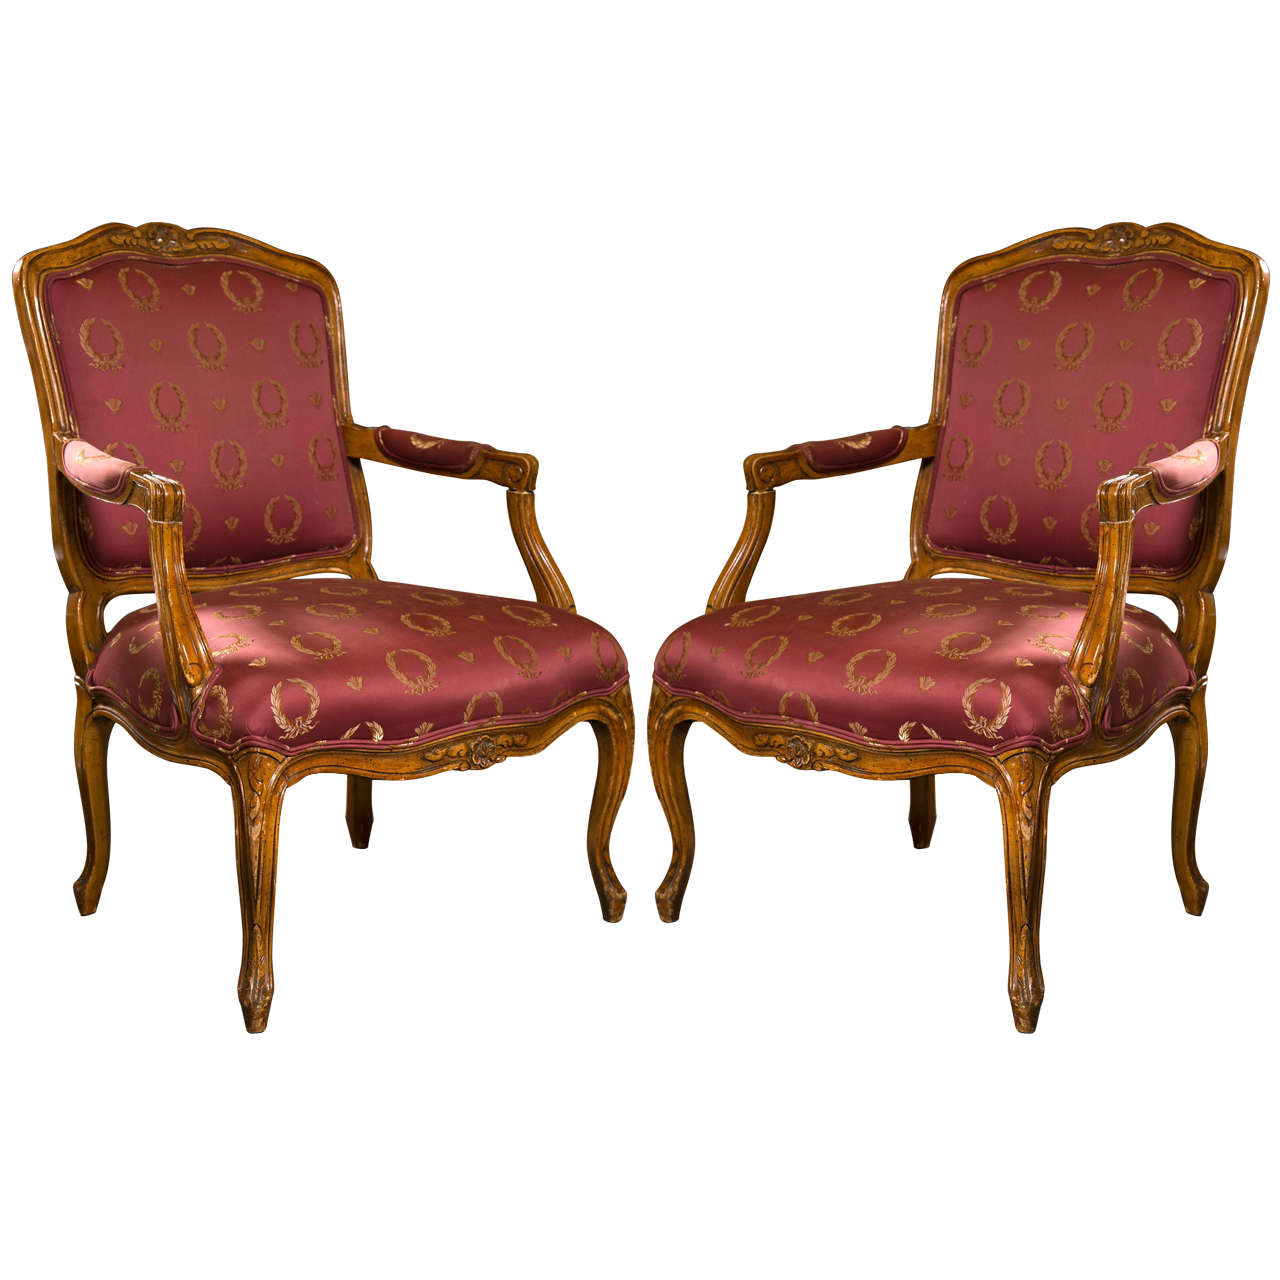 Pair of french louis xv style walnut fauteuils for sale at 1stdibs - Fauteuil style louis xv ...